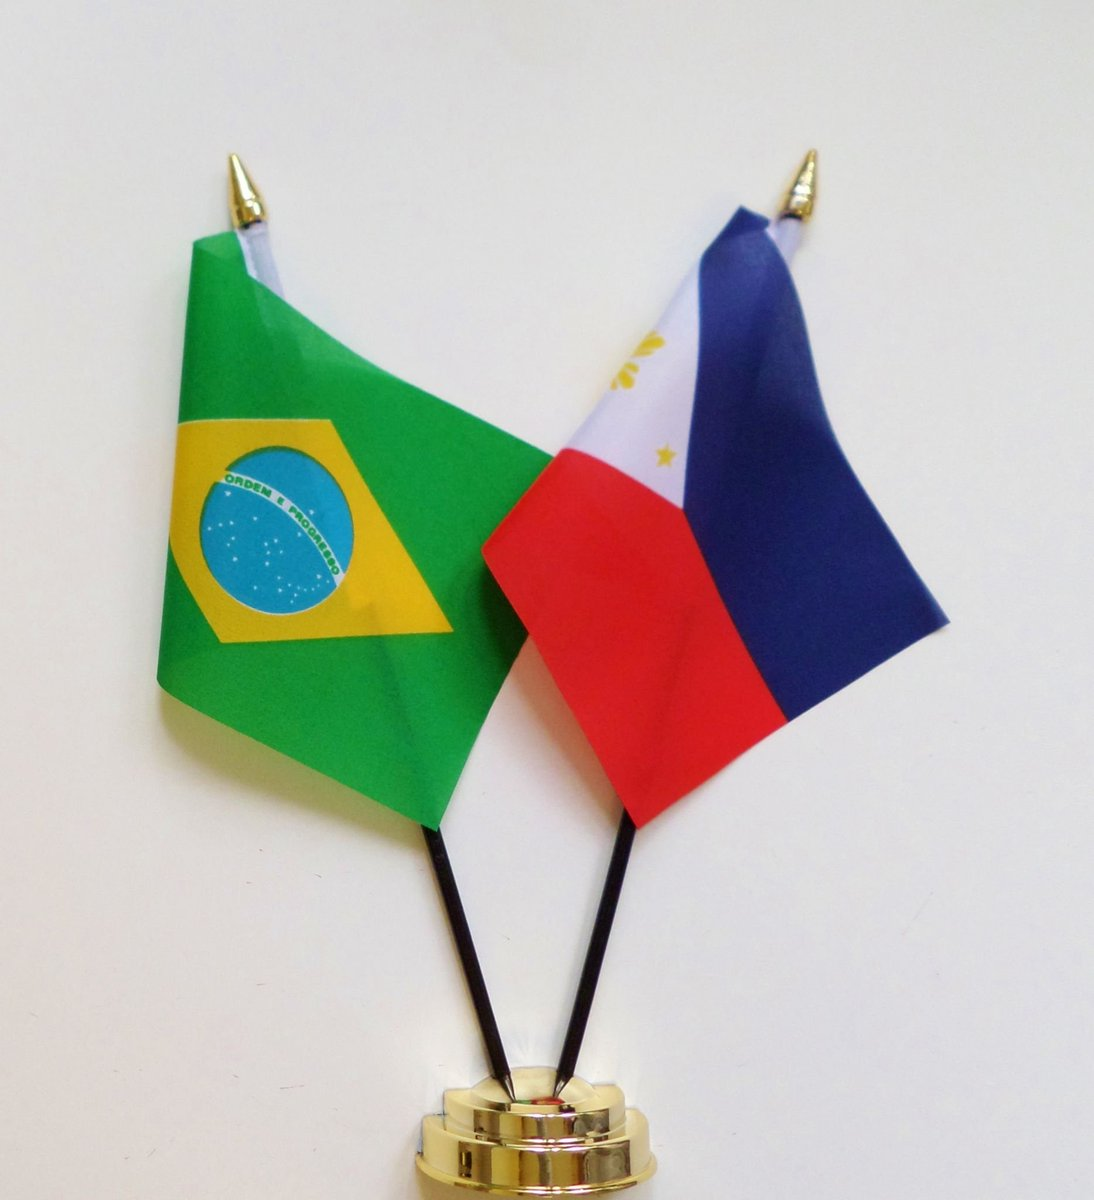 brazil and the philippines are the same country and i can prove it: a thread by a brazilian with a lot of filipino friends https://t.co/gp0X8ZKsWA